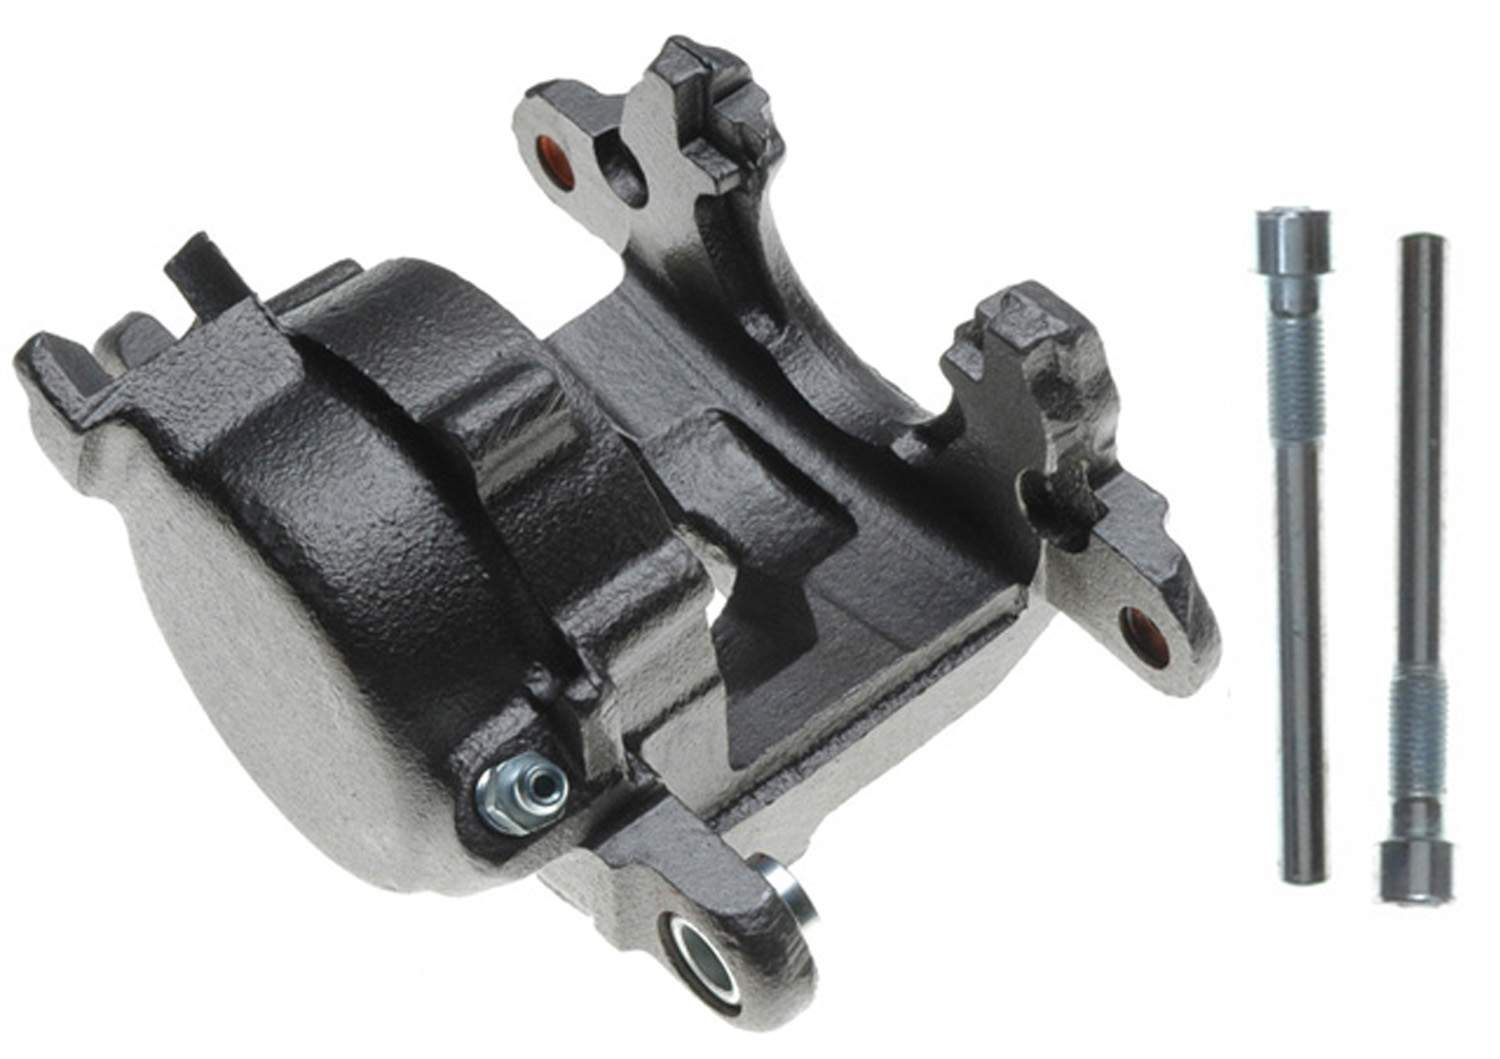 ACDELCO PROFESSIONAL BRAKES - Remanufactured Friction Ready Non-Coated - ADU 18FR625